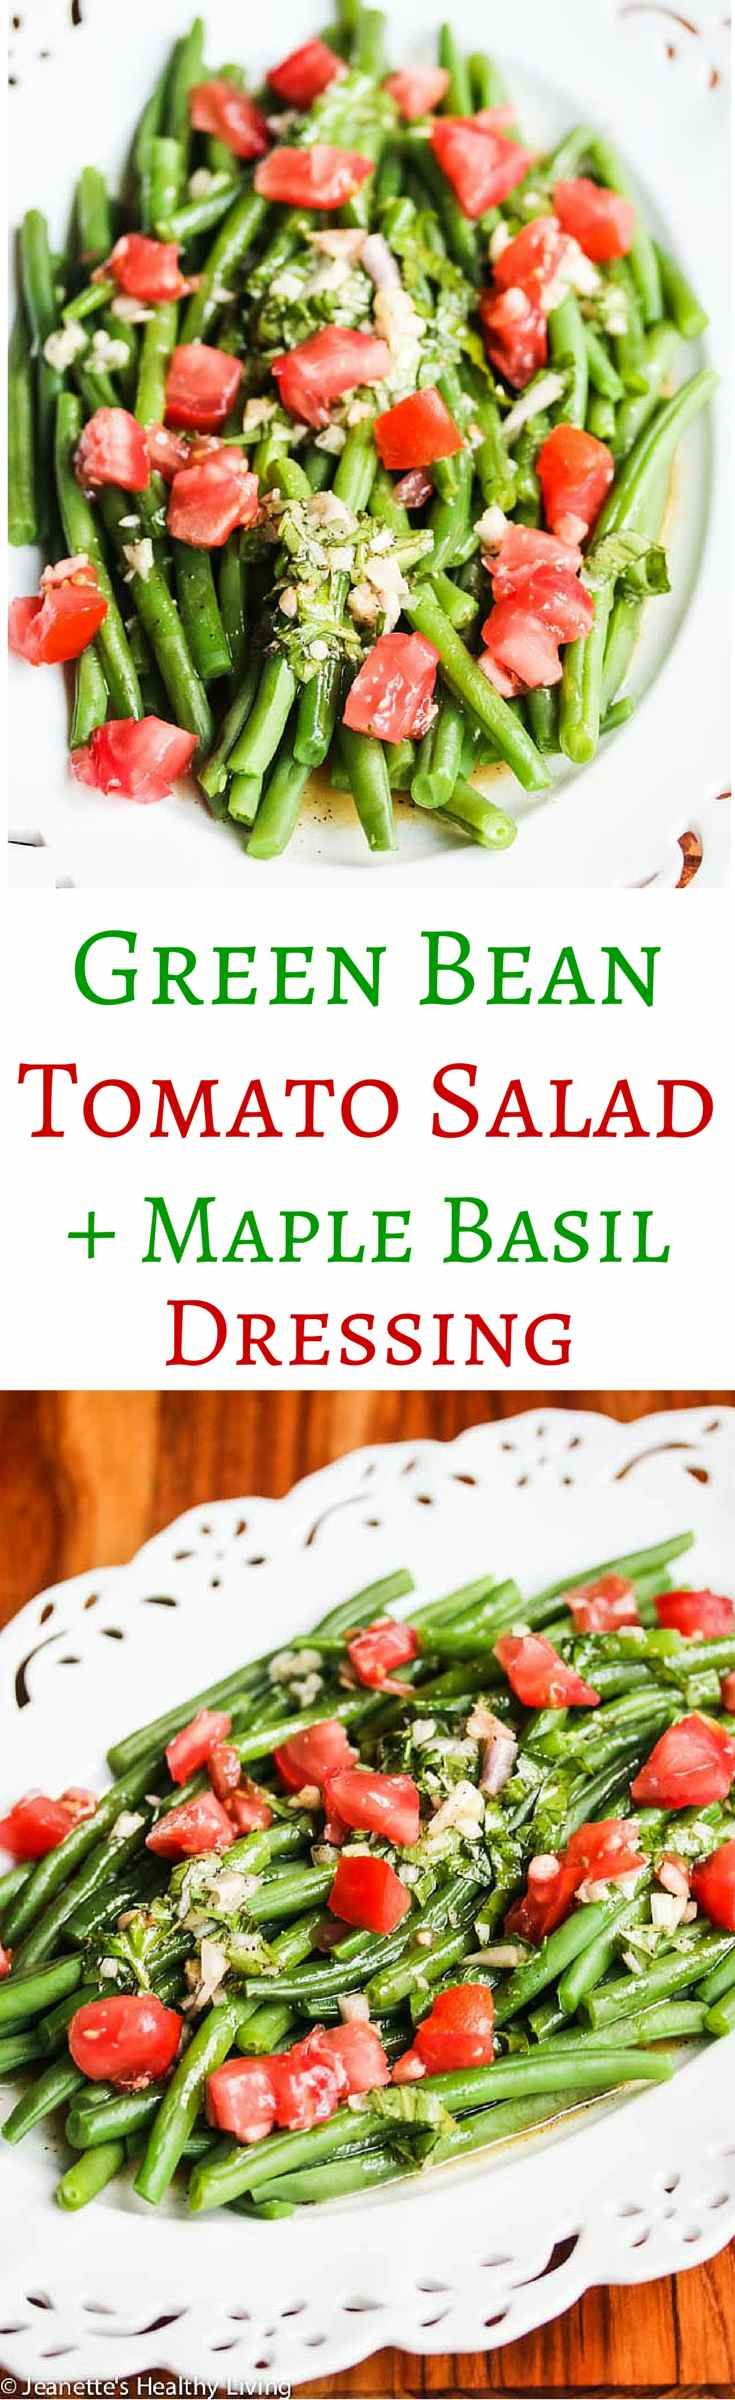 Green Bean Tomato Salad with Maple Basil Dressing - the sweet and tangy dressing helps bring out the best flavor in this summer green bean salad ~ http://jeanetteshealthyliving.com